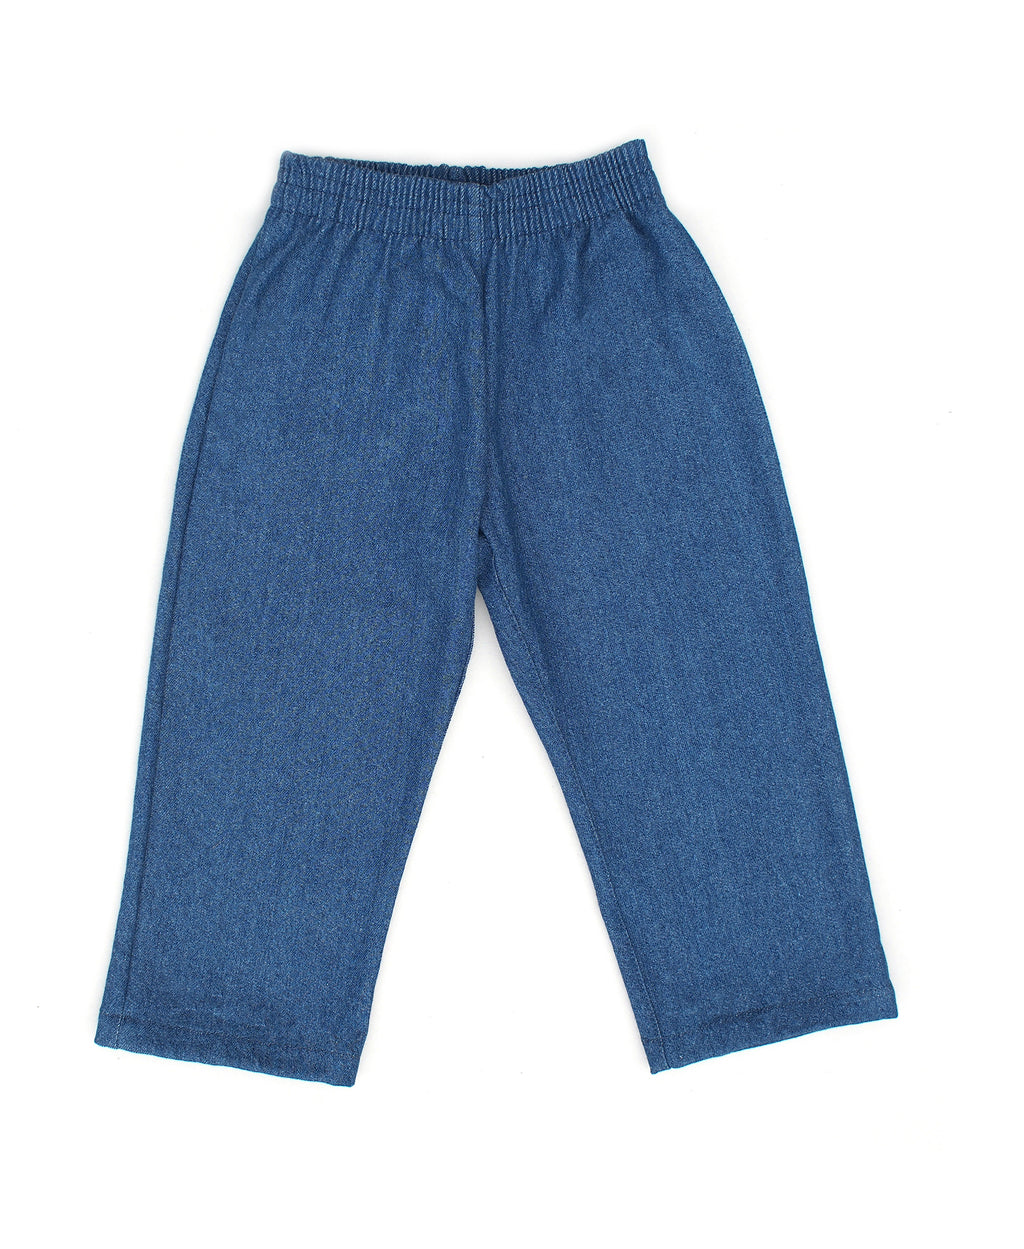 CREEK TROUSERS, DENIM